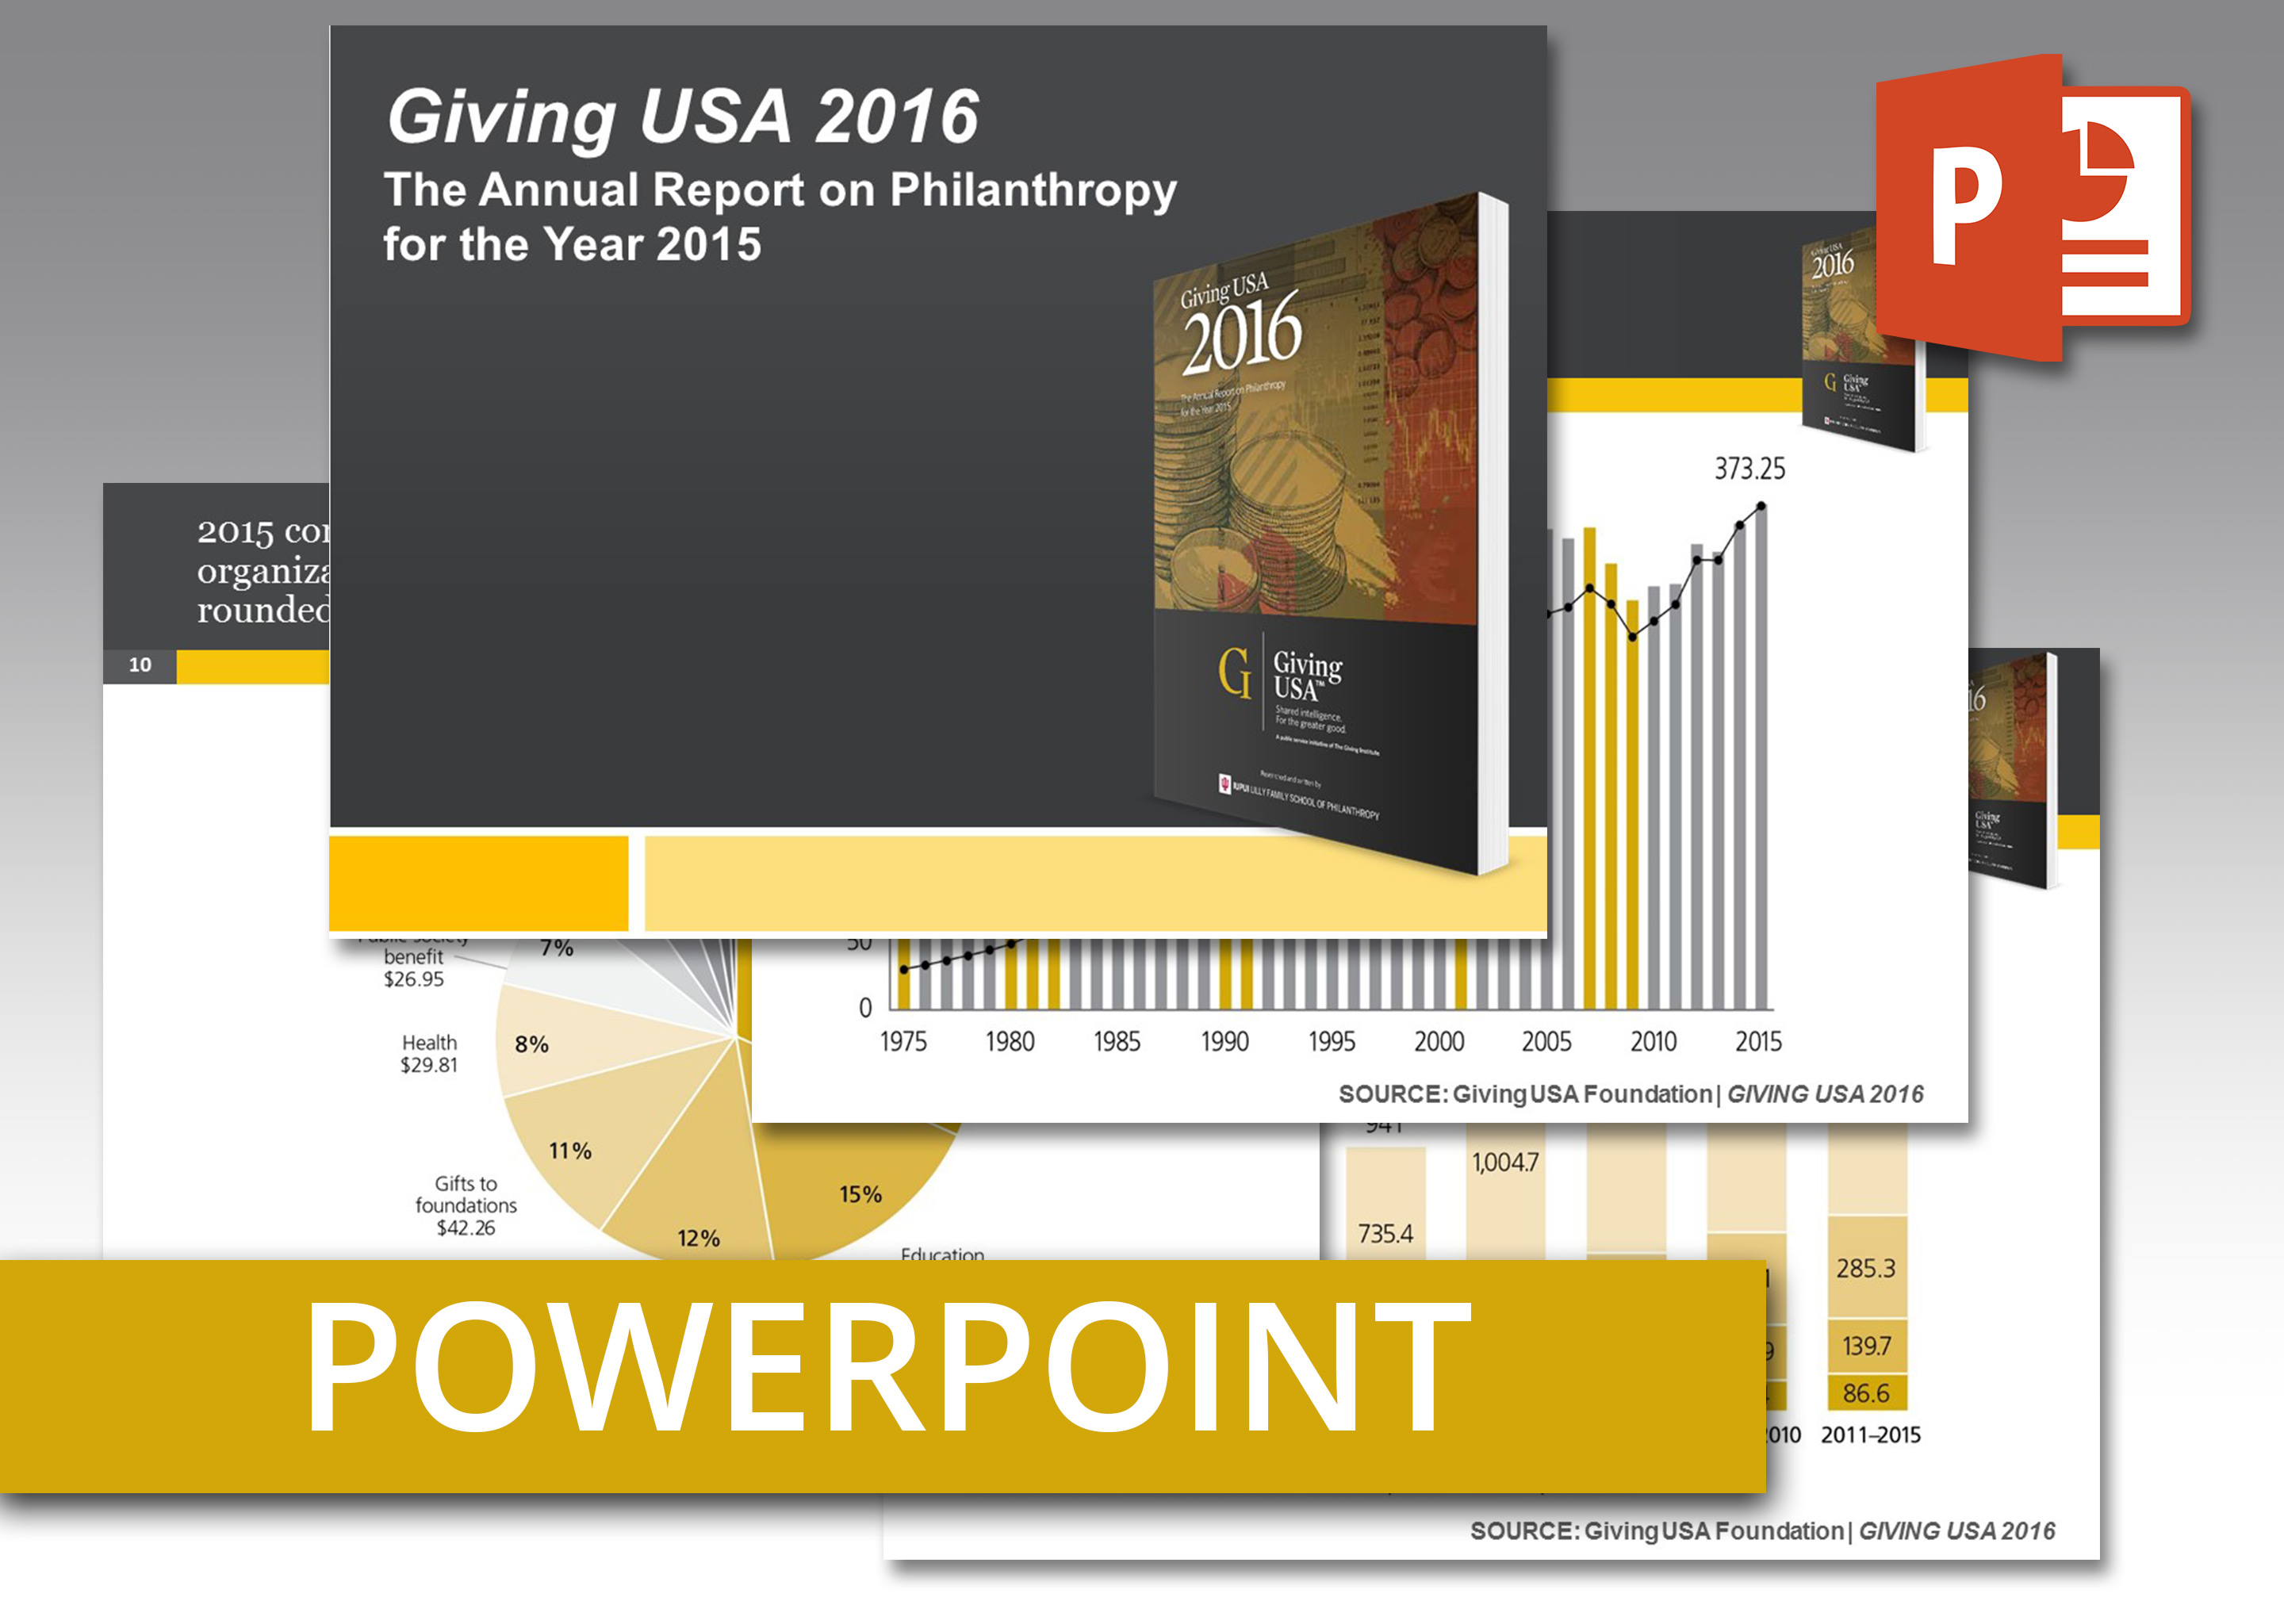 Usdgus  Unique Giving Usa  Powerpoint An Easytouse Presentation Of Report  With Exciting Giving Usa  Powerpoint An Easytouse Presentation Of Report Findings Including Talking Points With Nice Symbiosis Powerpoint Also Biodiversity Powerpoint In Addition Powerpoint Presentation Free Download And Law Enforcement Powerpoint Templates As Well As Powerpoint Poster Template X Additionally Can You Embed A Youtube Video In Powerpoint From Givingusaorg With Usdgus  Exciting Giving Usa  Powerpoint An Easytouse Presentation Of Report  With Nice Giving Usa  Powerpoint An Easytouse Presentation Of Report Findings Including Talking Points And Unique Symbiosis Powerpoint Also Biodiversity Powerpoint In Addition Powerpoint Presentation Free Download From Givingusaorg